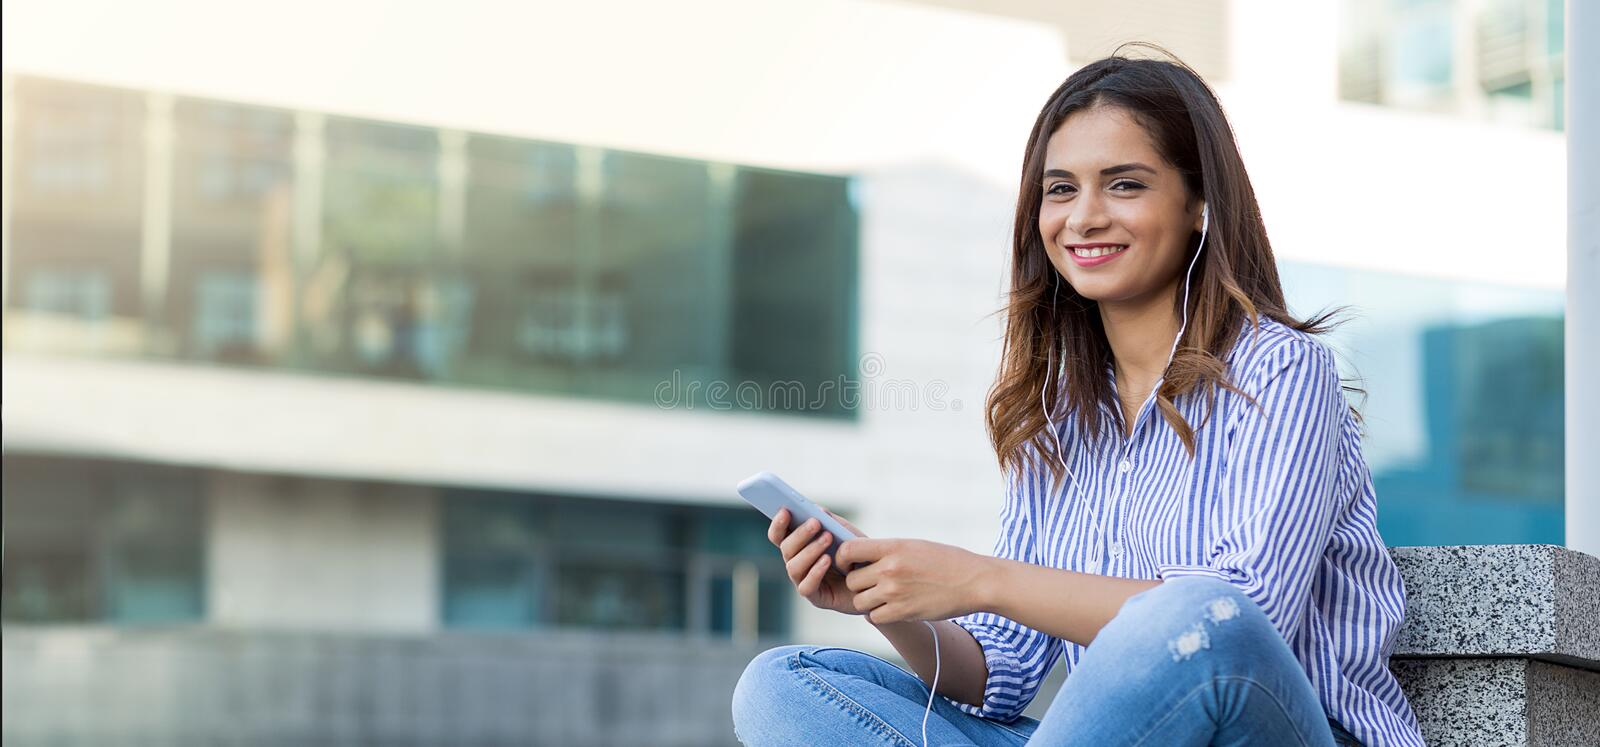 Young woman listening to music and looking at the camera outdoor with copy space royalty free stock photography